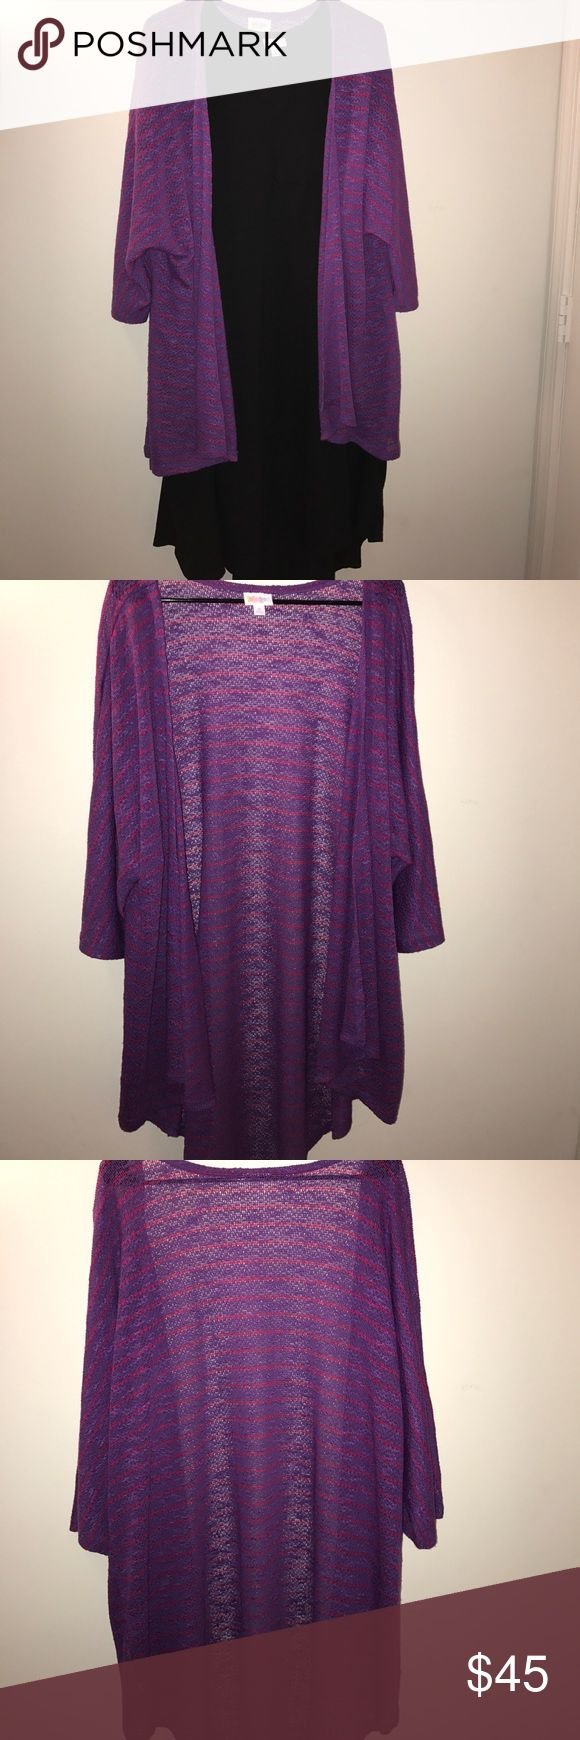 LuLaRoe Lindsay Kimono Purple with reddish pink stripes! This is perfect for any occasion! Dress it up for a night out or throw it on to run some errands. NWOT (Dress NOT included) LuLaRoe Other